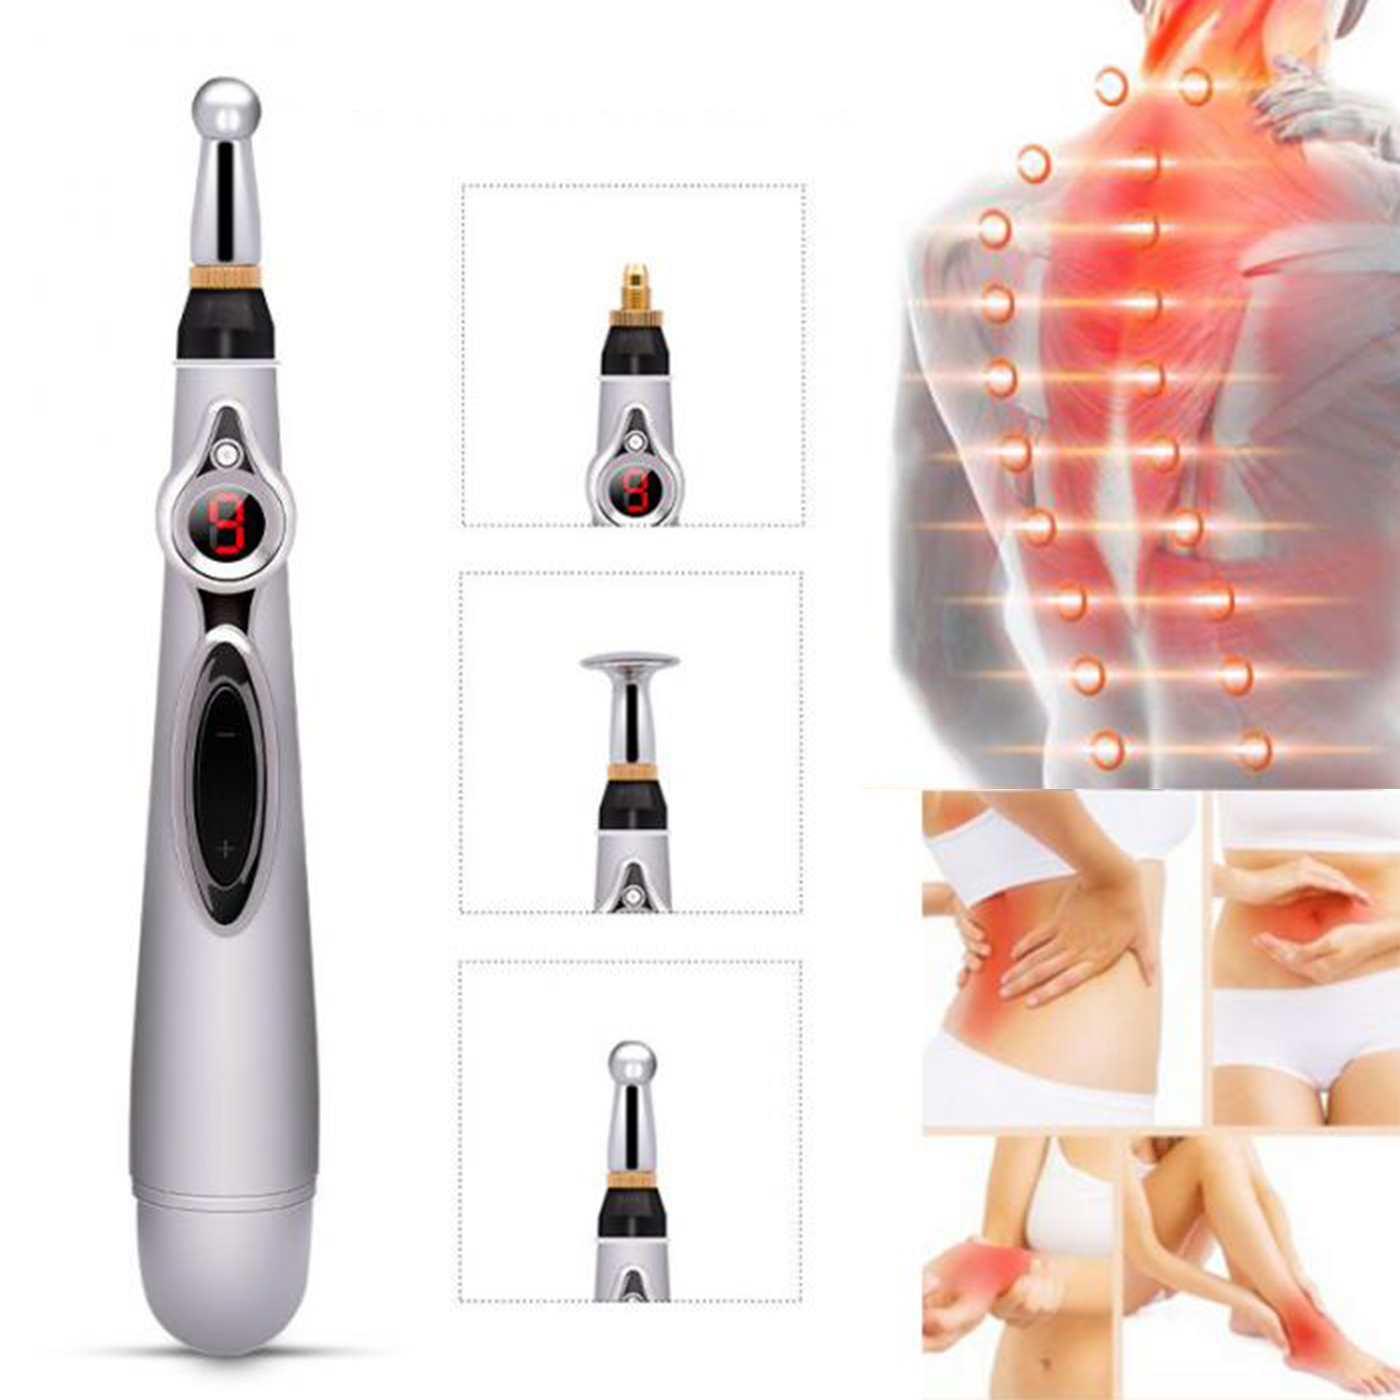 Meridian Laser Accupuncture Pen Massage Accupuncture Laser Pen Accupuncture Stimulator Pen Accupuncture Points Detector